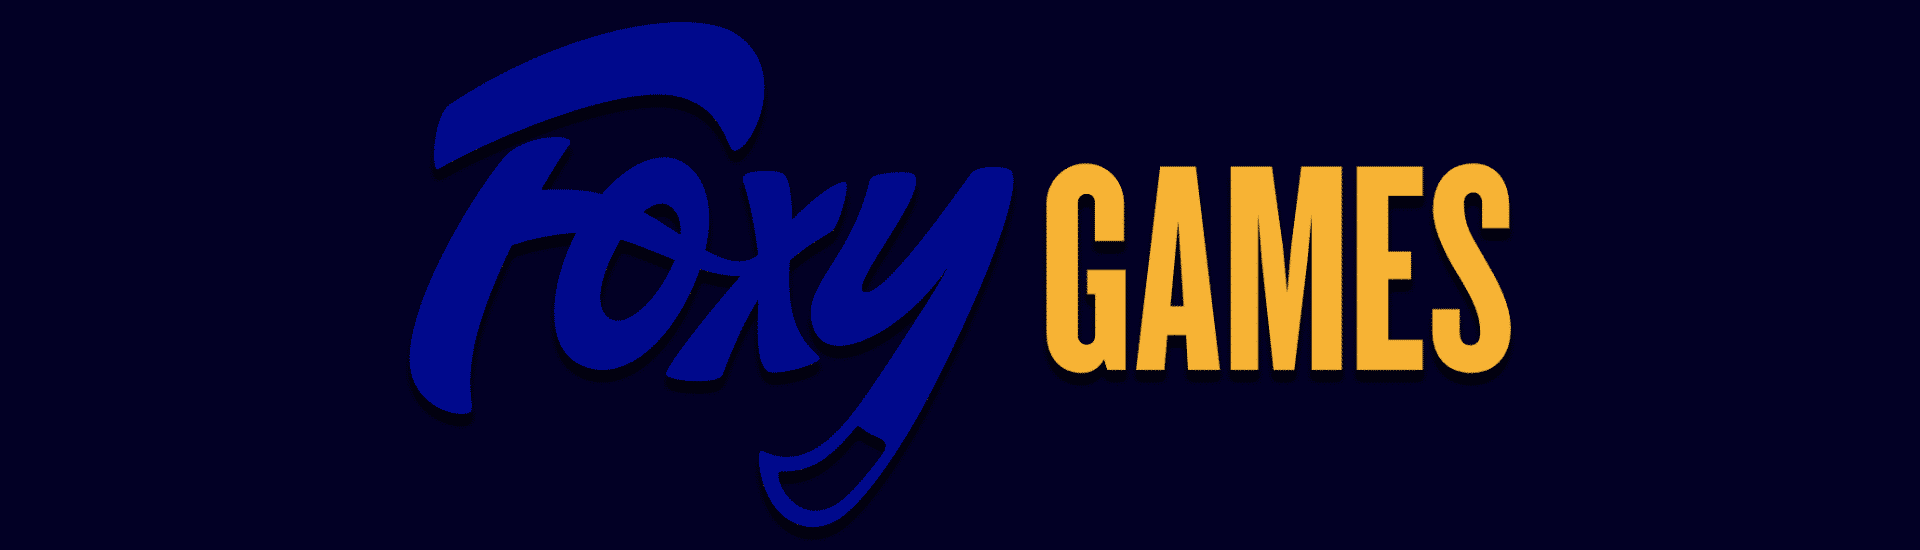 Foxy Games Featured Image